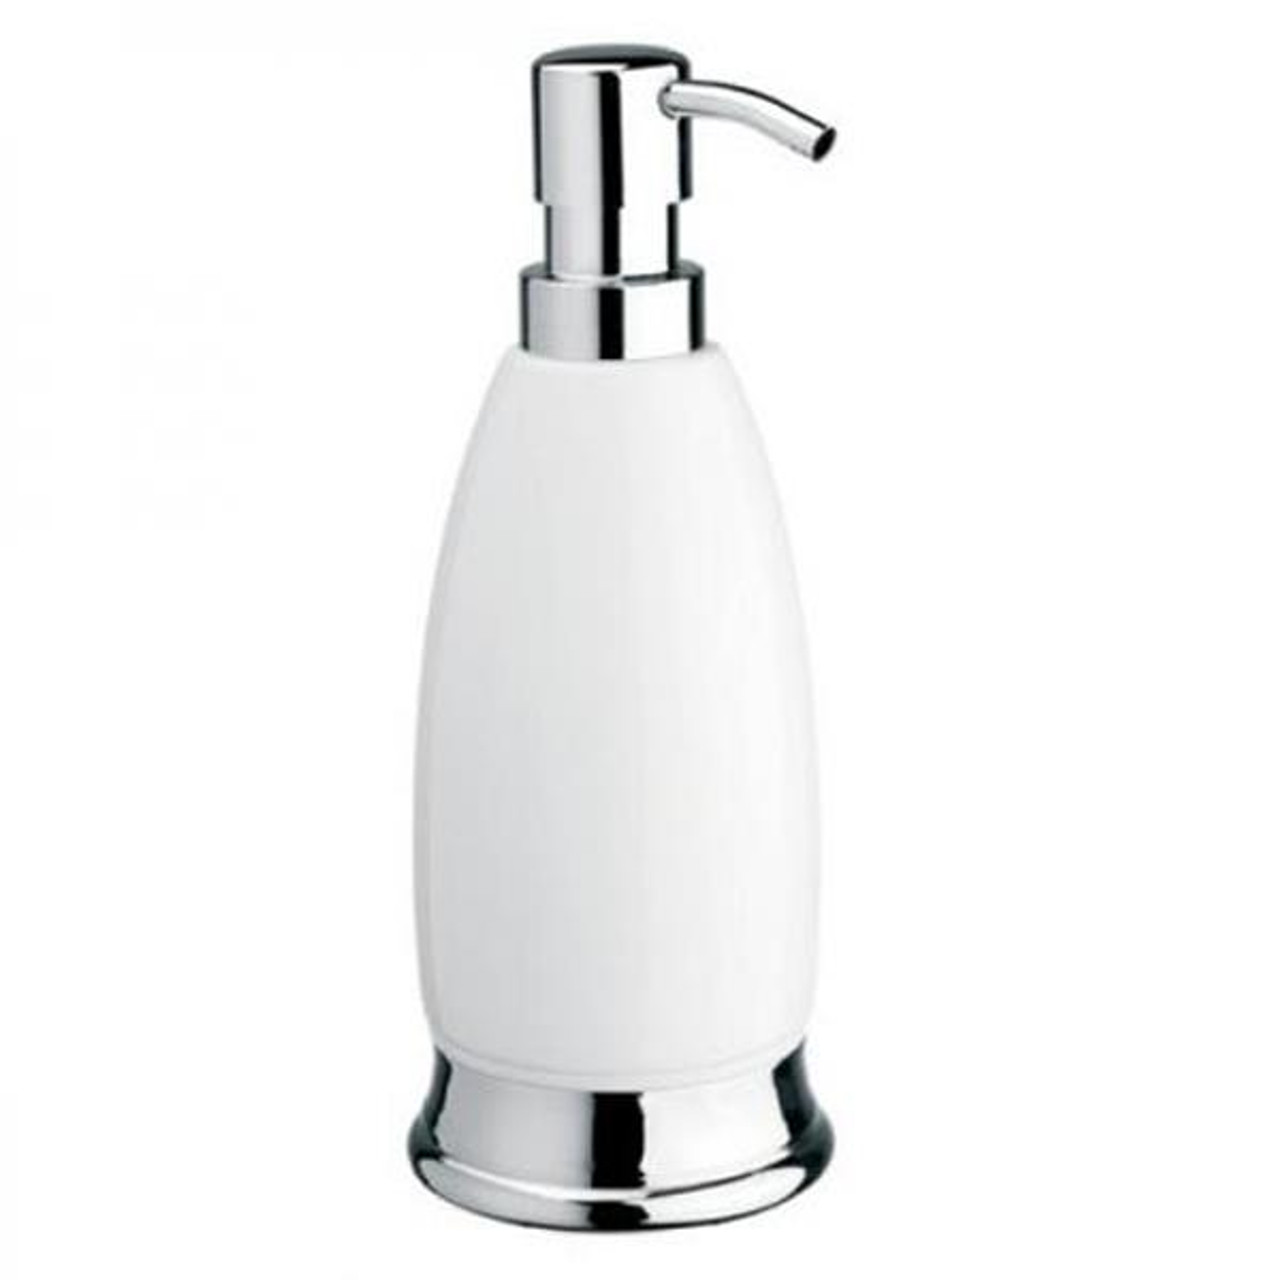 Chrome Plated Samuel Heath Soap Dispenser